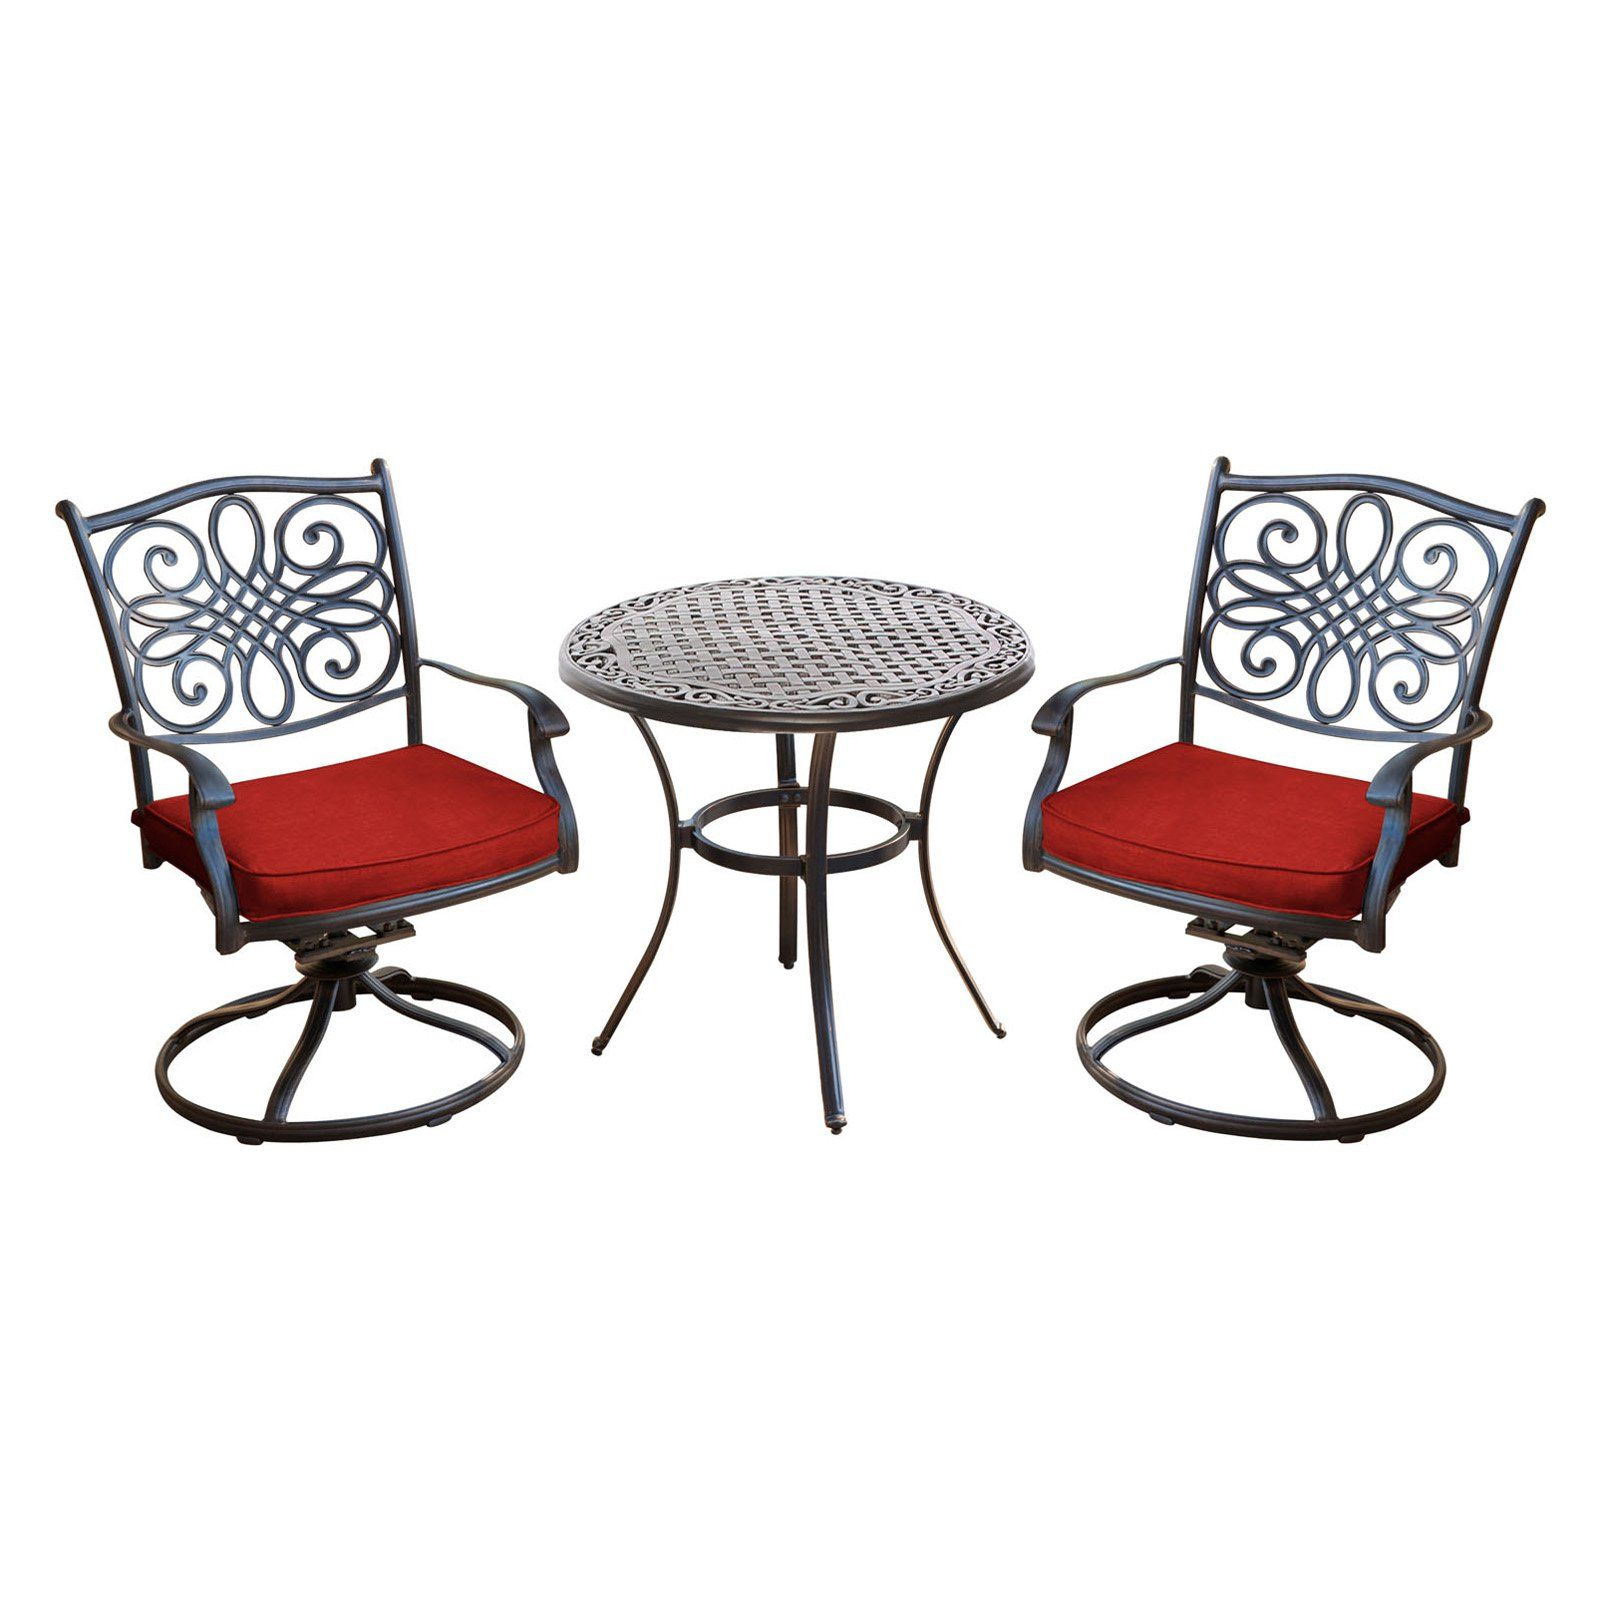 Peachy Hanover Traditions Aluminum 3 Piece Outdoor Swivel Bistro Caraccident5 Cool Chair Designs And Ideas Caraccident5Info